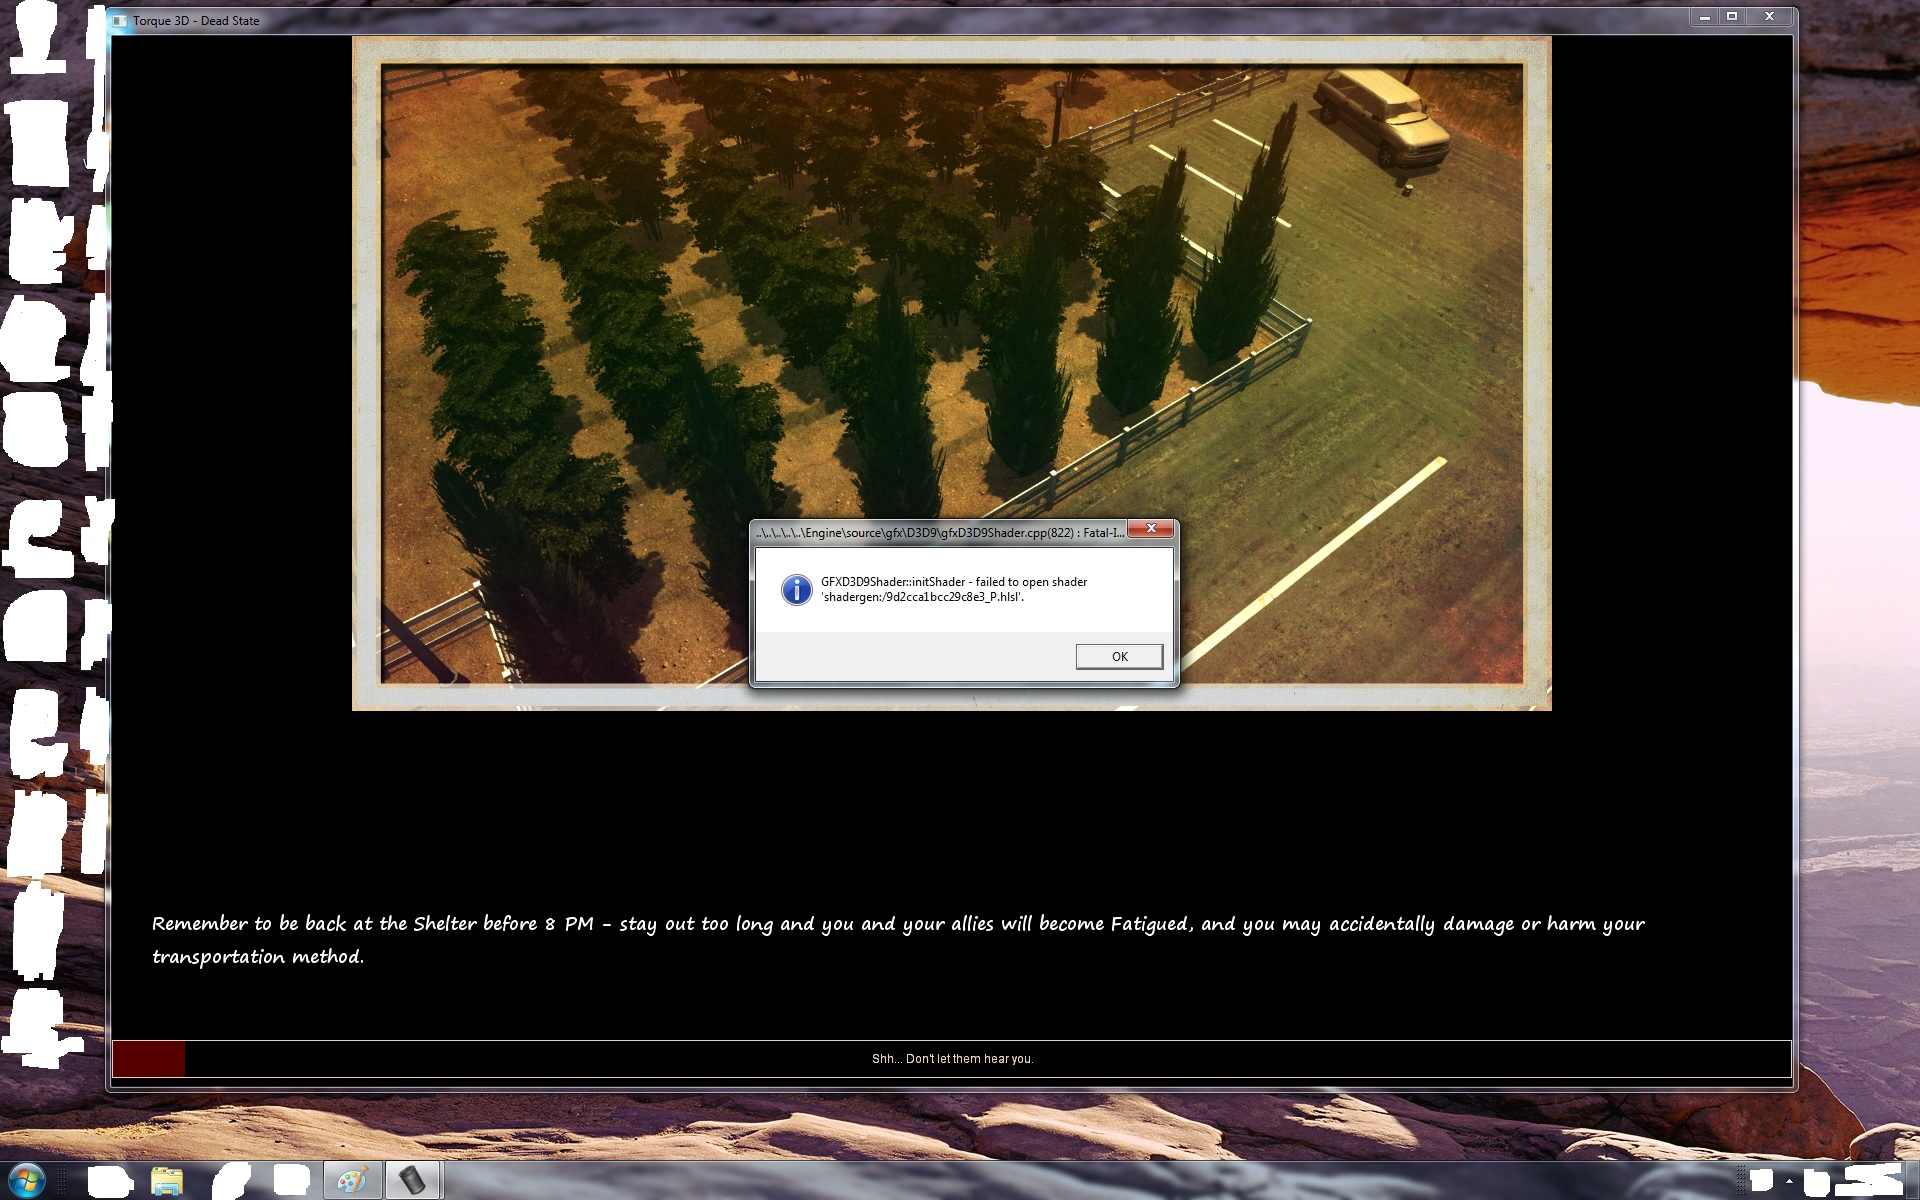 download dead state full